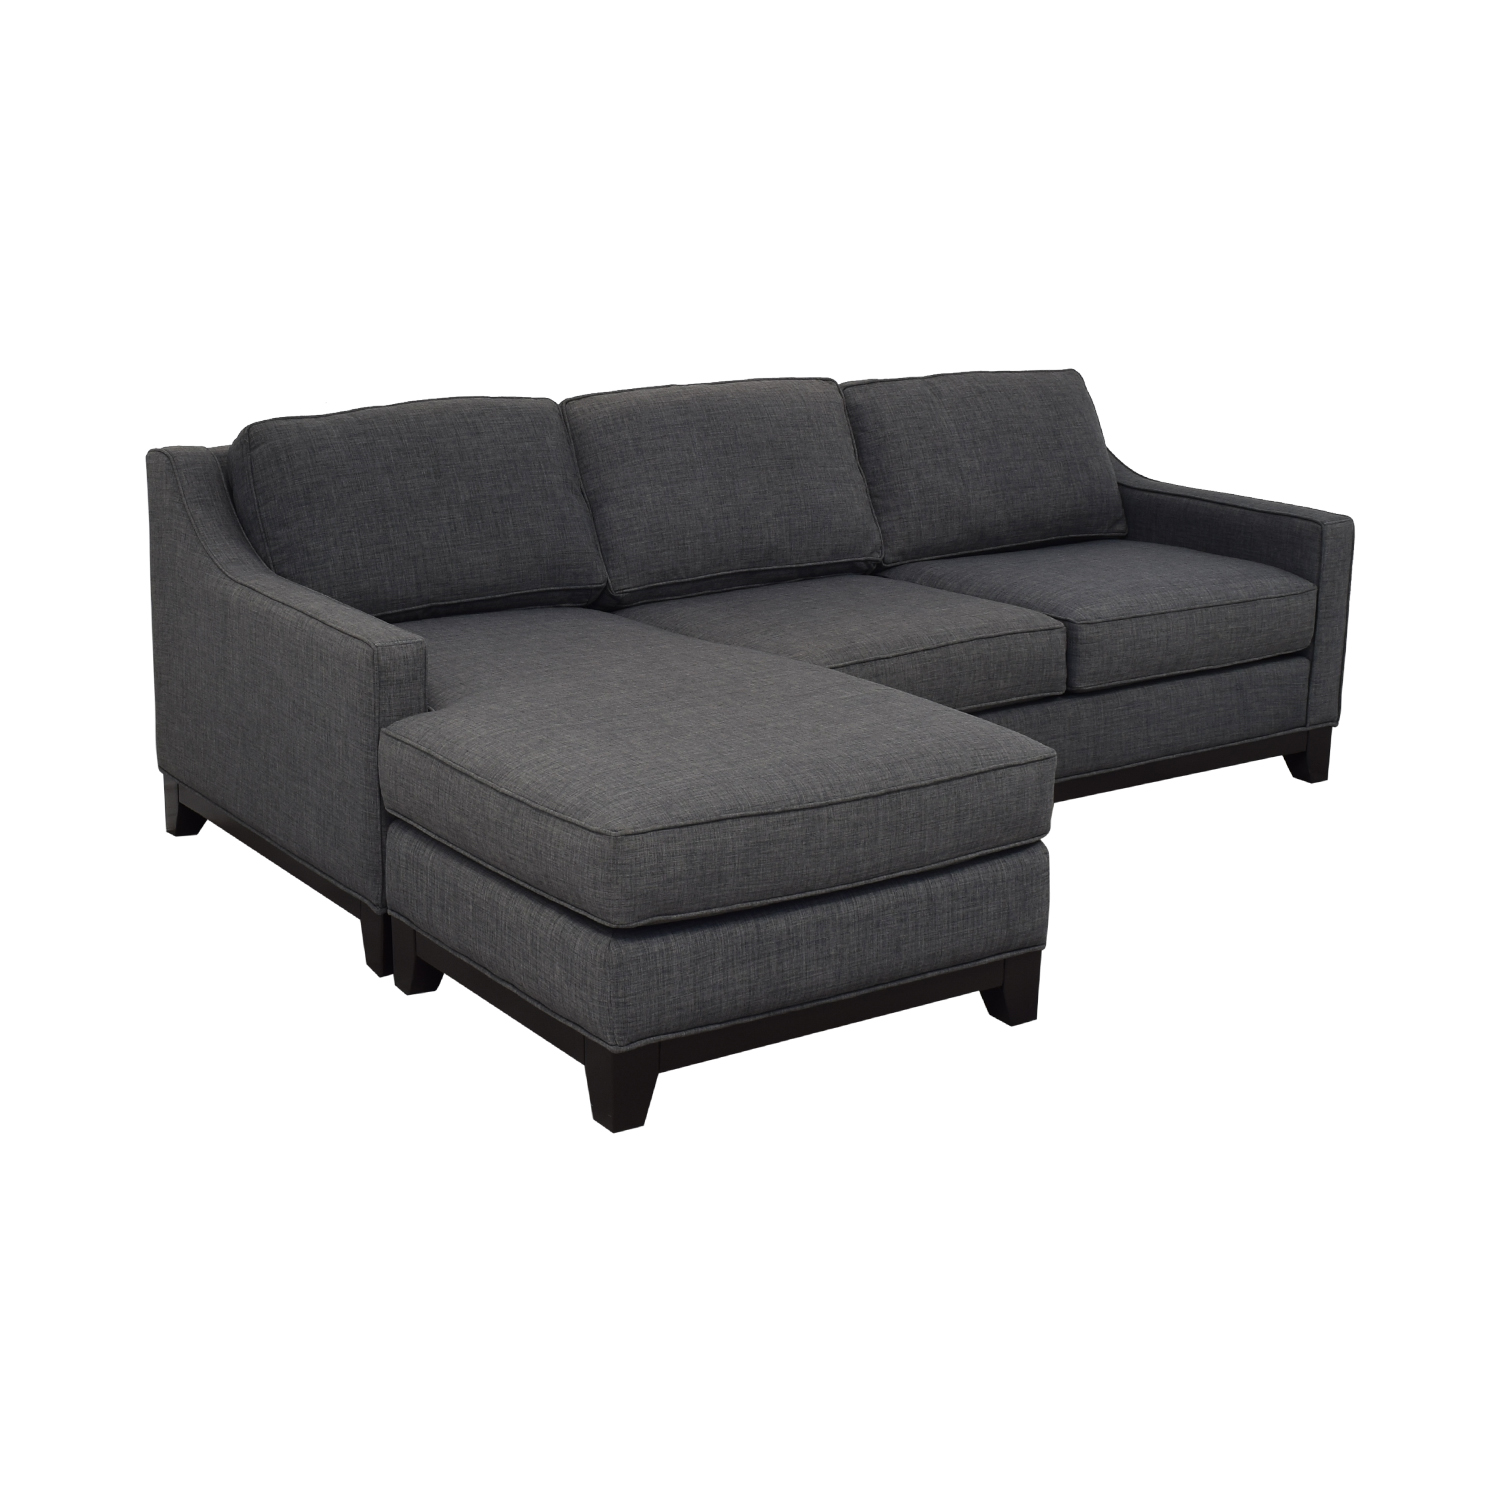 Macy's Keegan Fabric Reversible Chaise Sectional Sofa / Sectionals